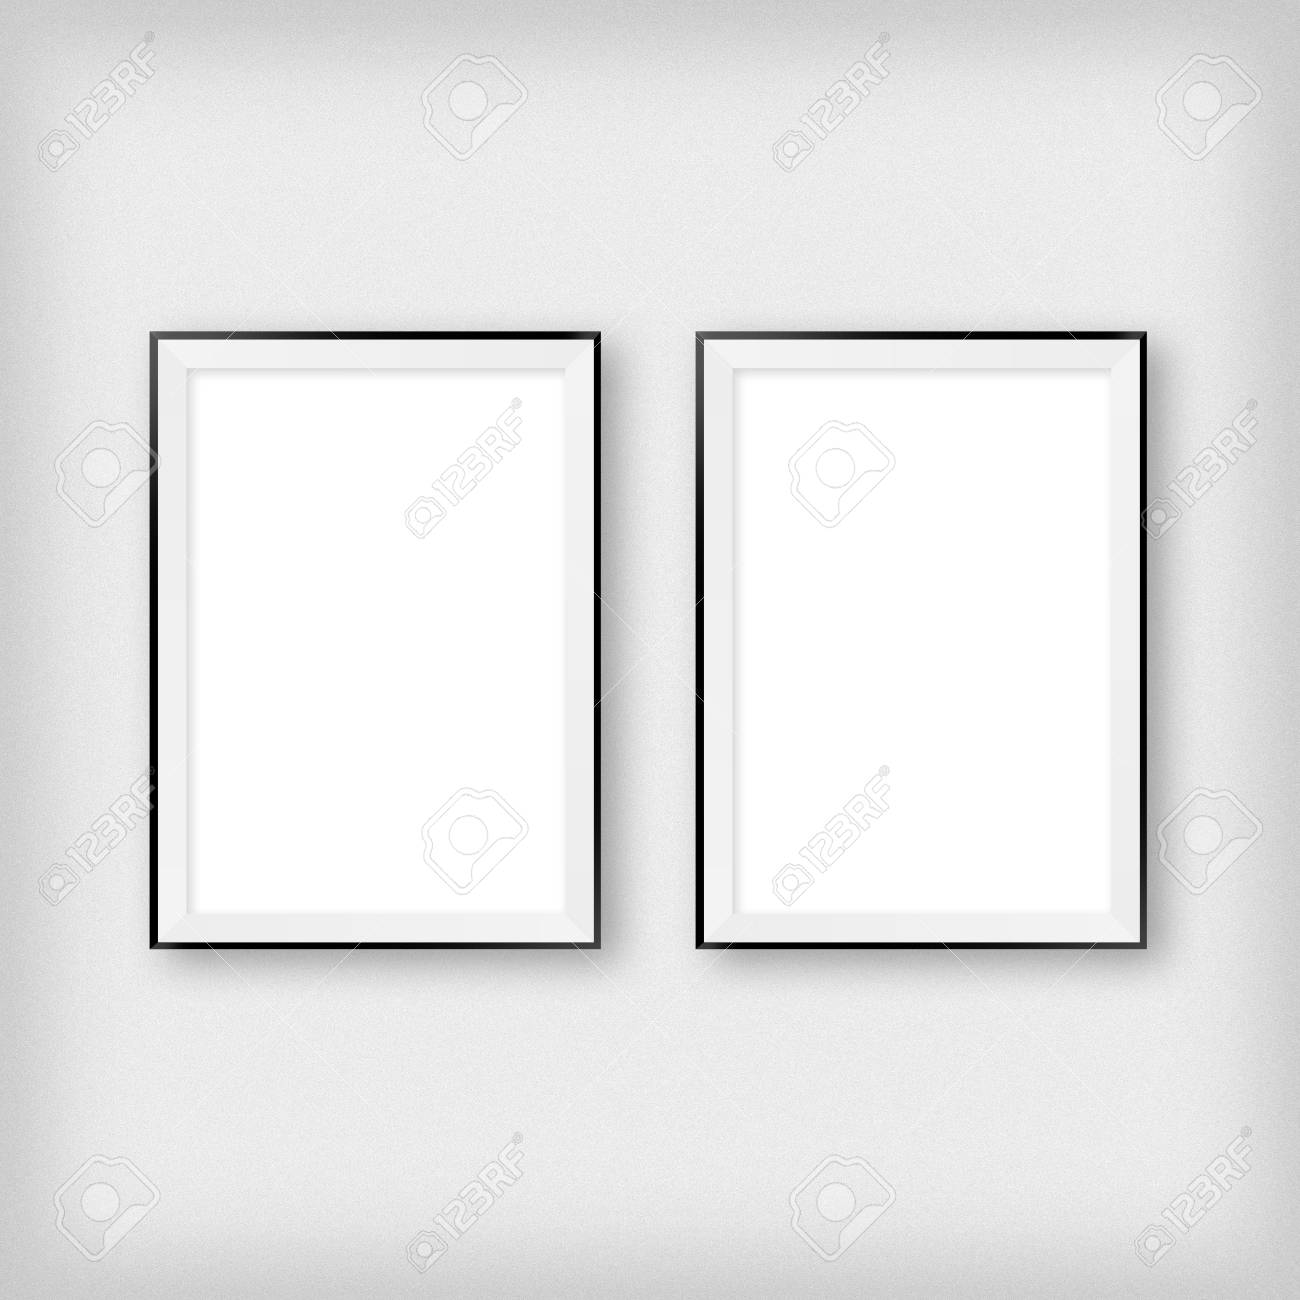 Gallery interior with two empty frames on wall - 121909949